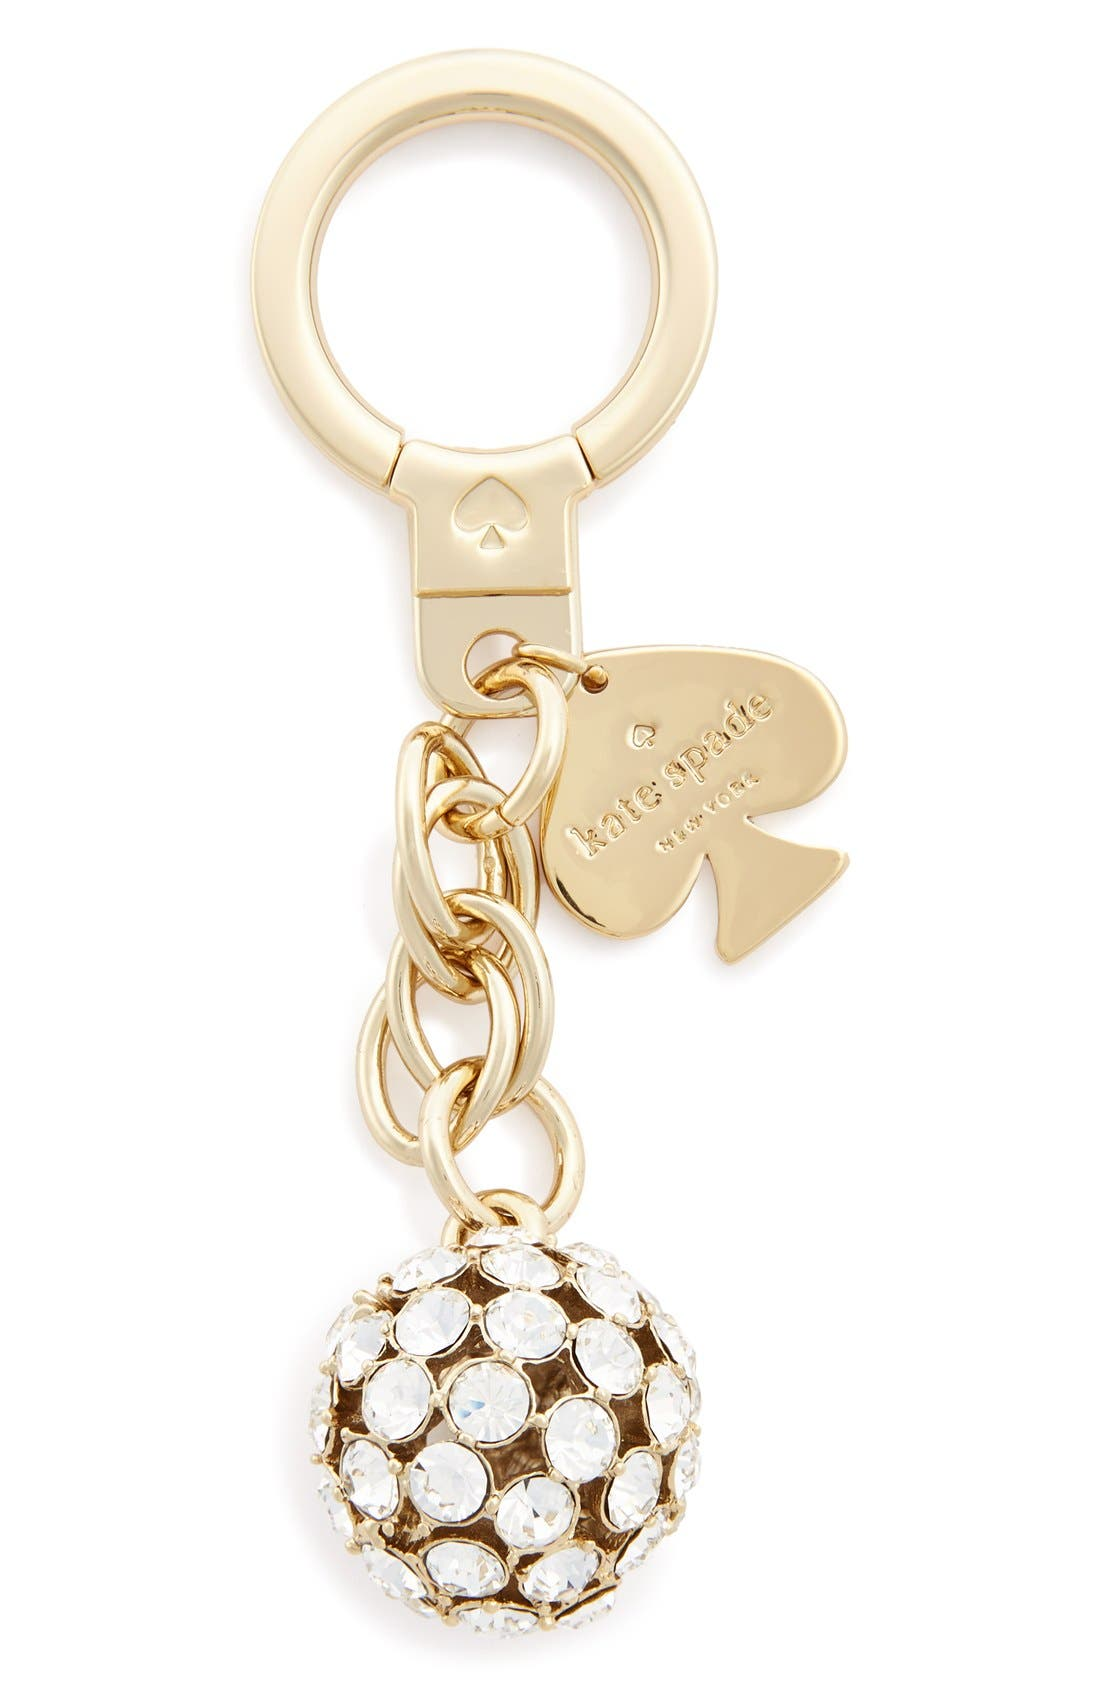 Alternate Image 1 Selected - kate spade new york 'lady marmalade' bag charm